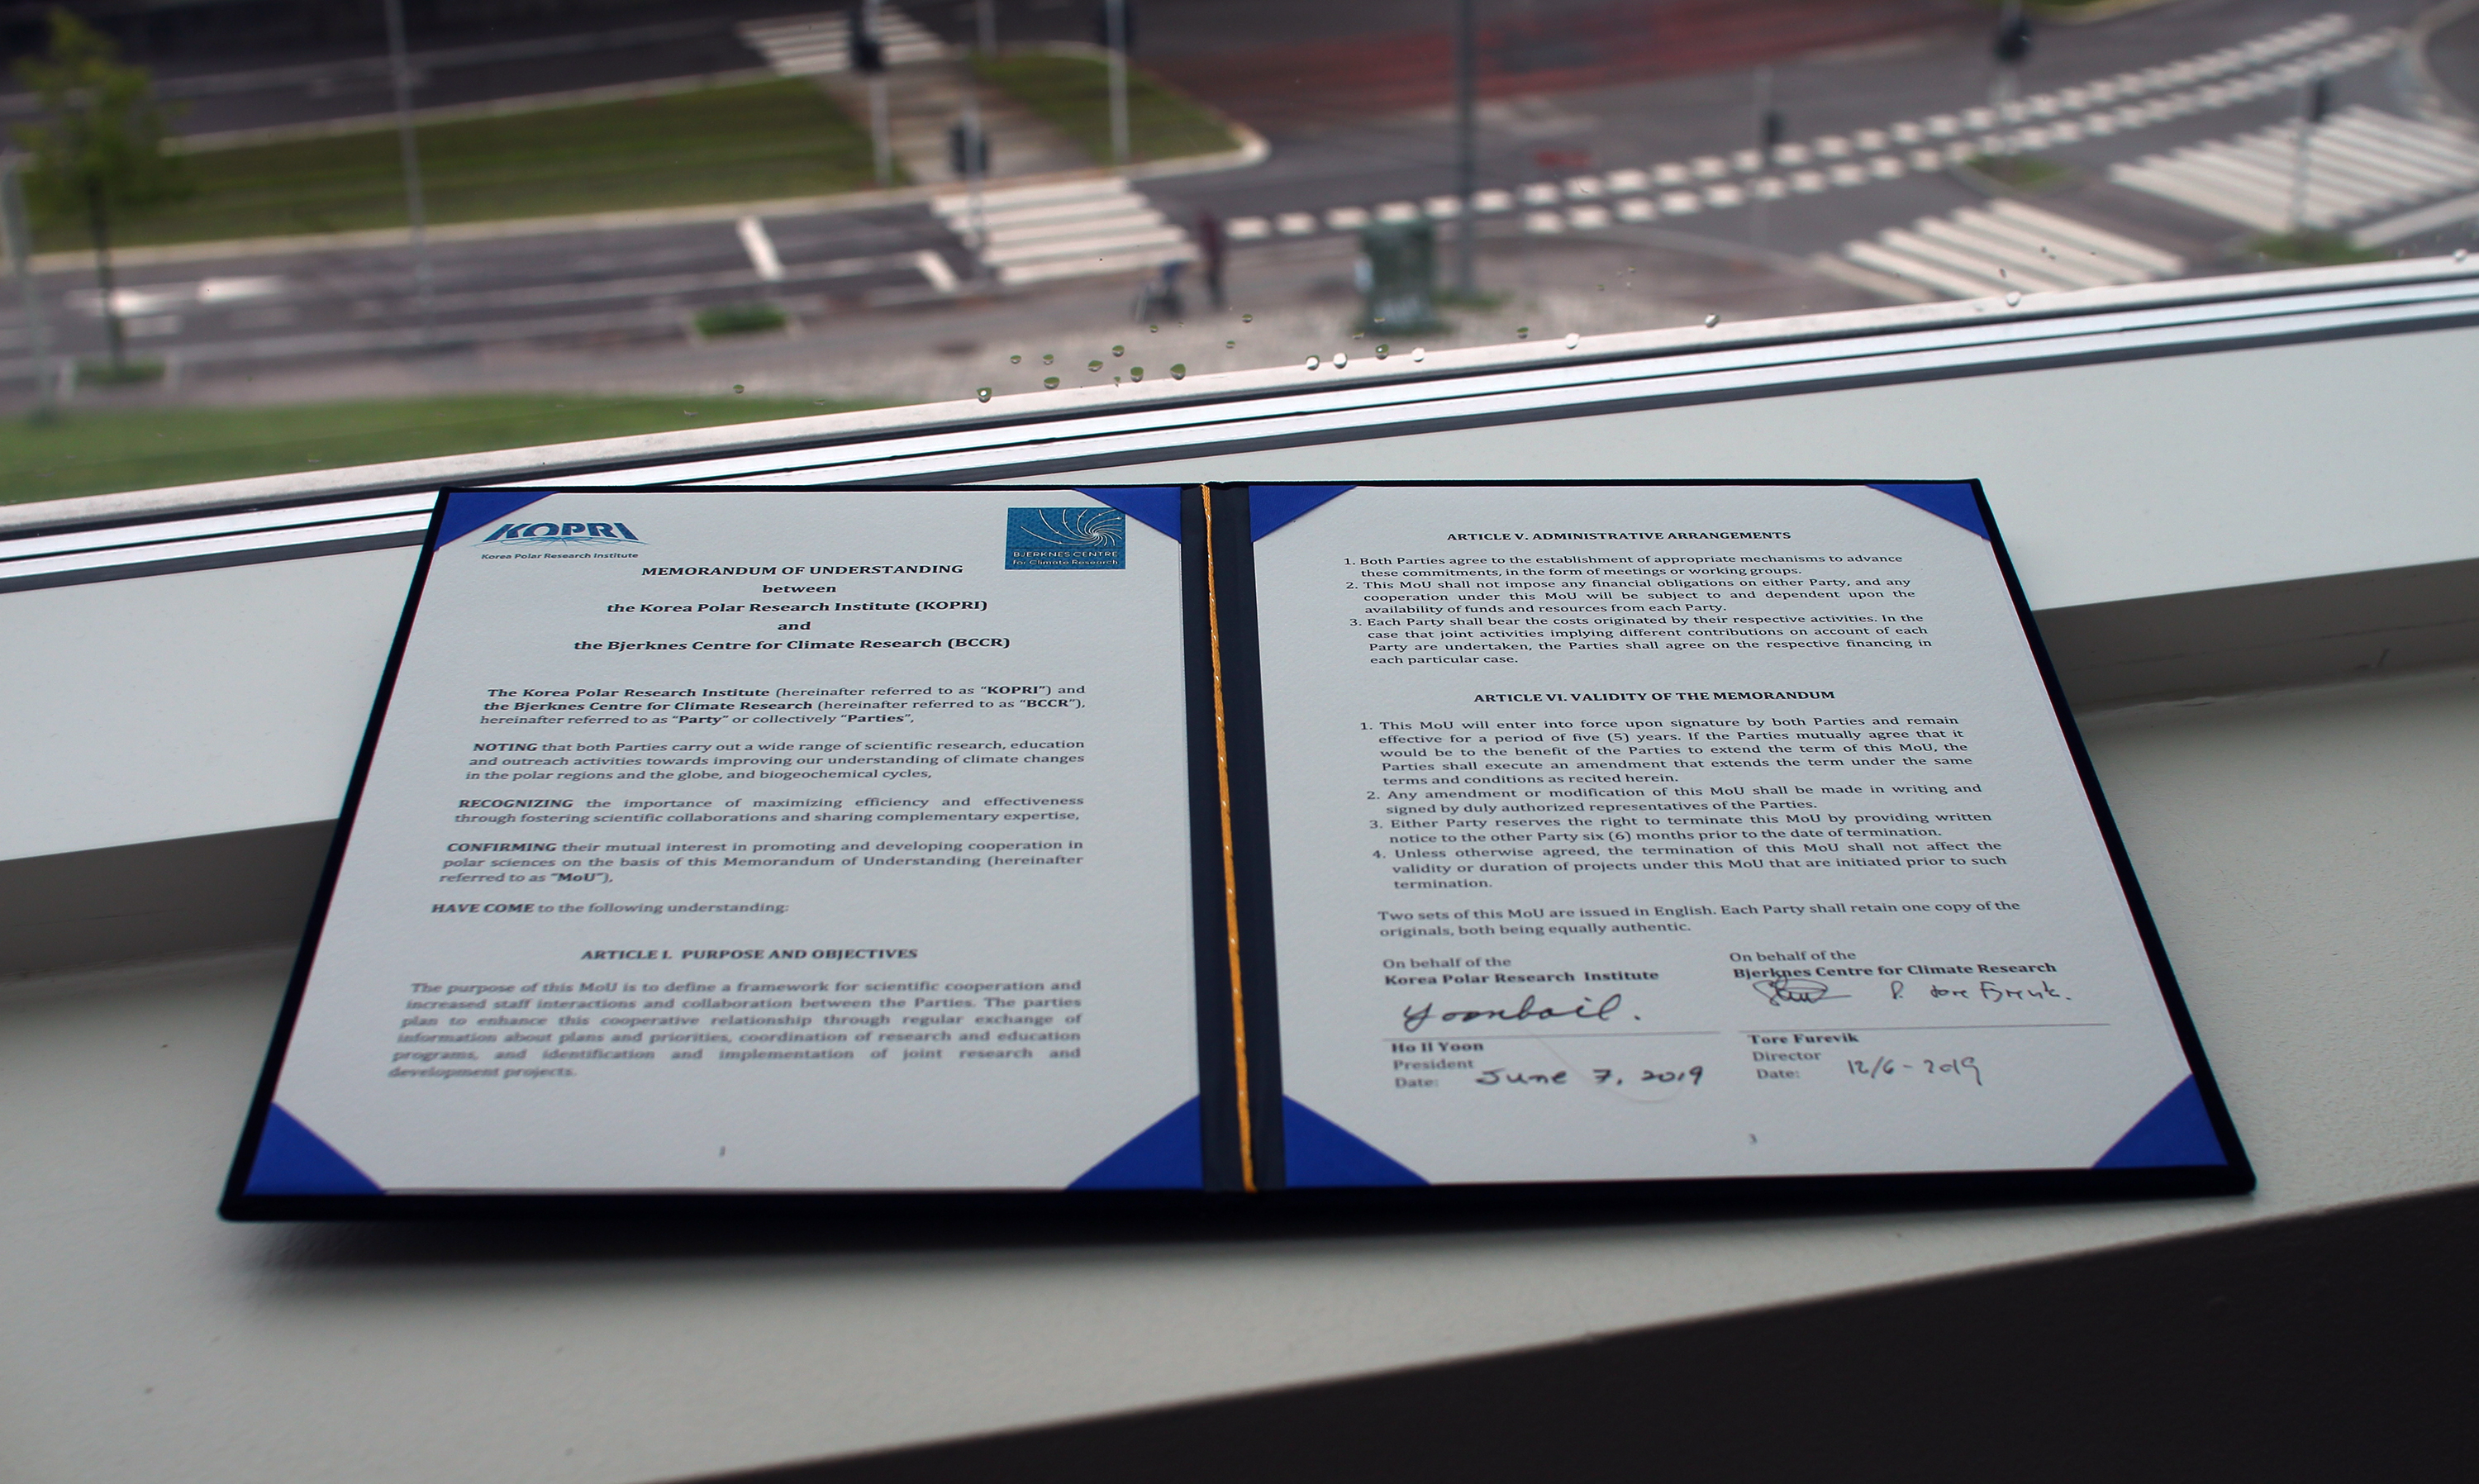 The MoU between KOPRI and the Bjerknes Centre